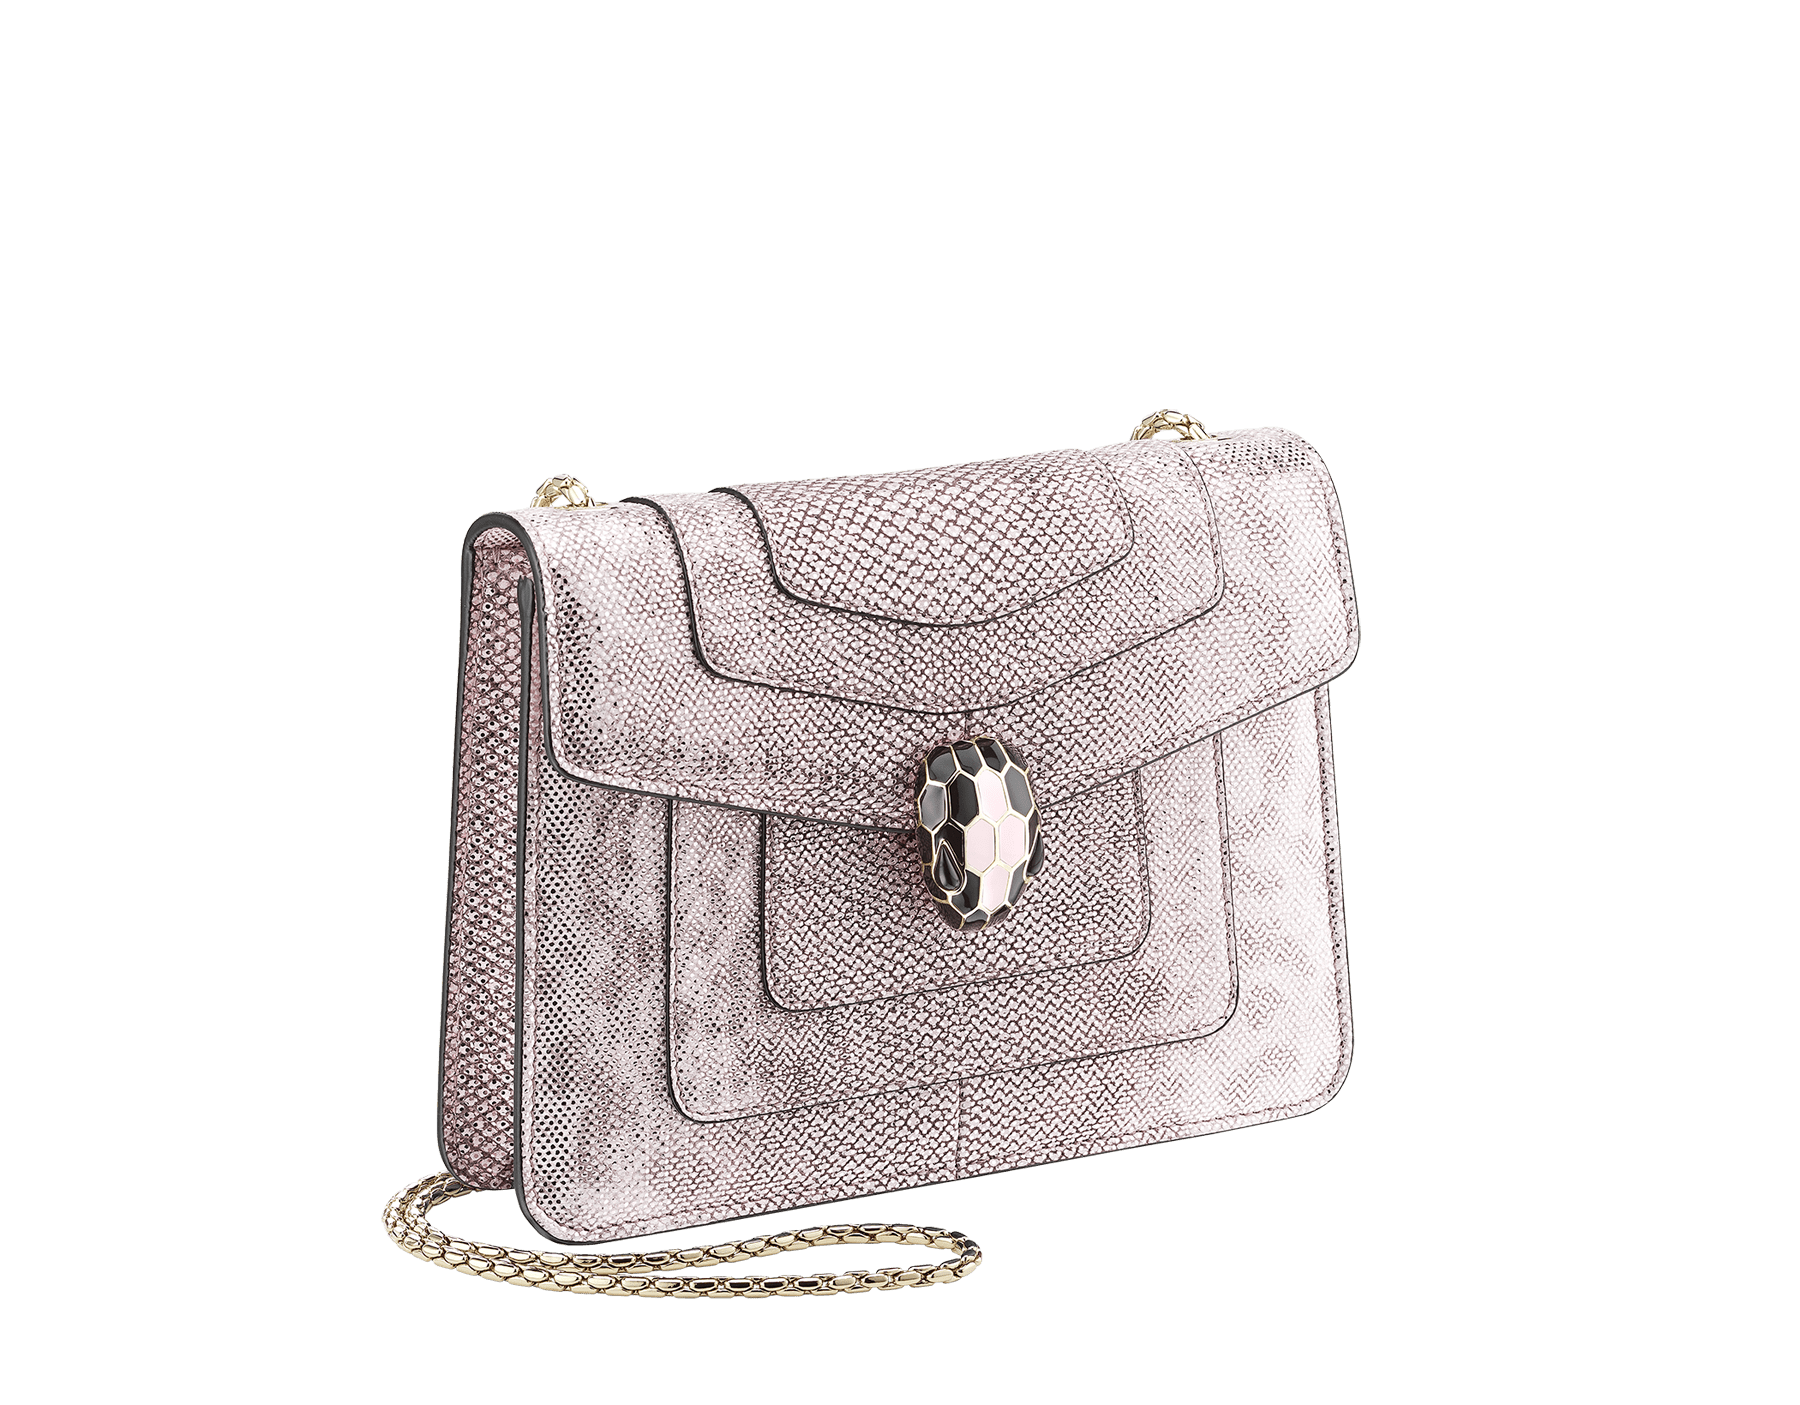 """Serpenti Forever"" crossbody bag in rosa di francia metallic karung skin. Iconic snakehead closure in light gold plated brass embellished with black and glitter rosa di francia enamel and black onyx eyes. 288781 image 2"